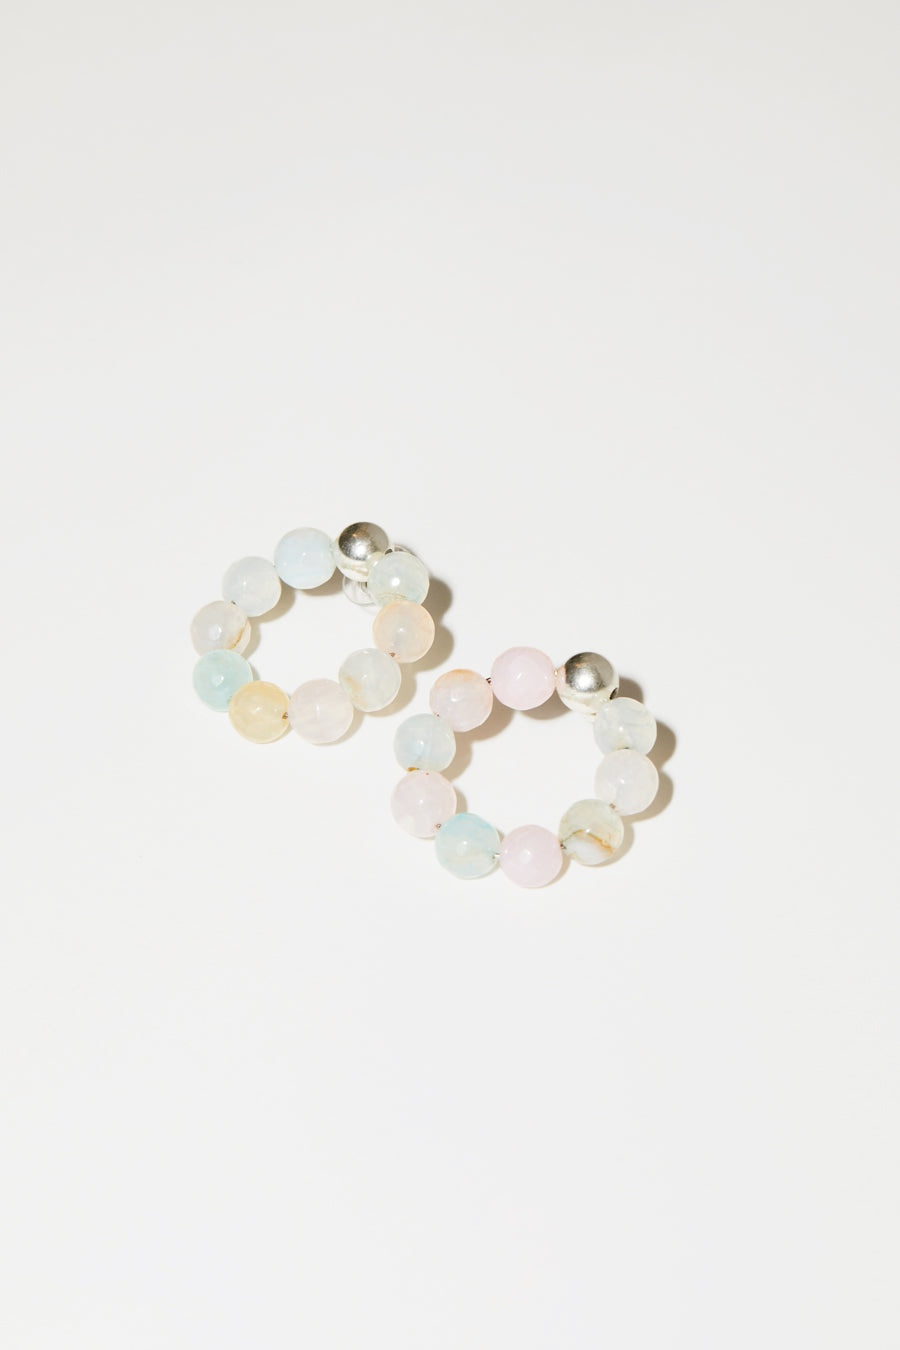 Mirit Weinstock Candy Hoops in Silver / Candy